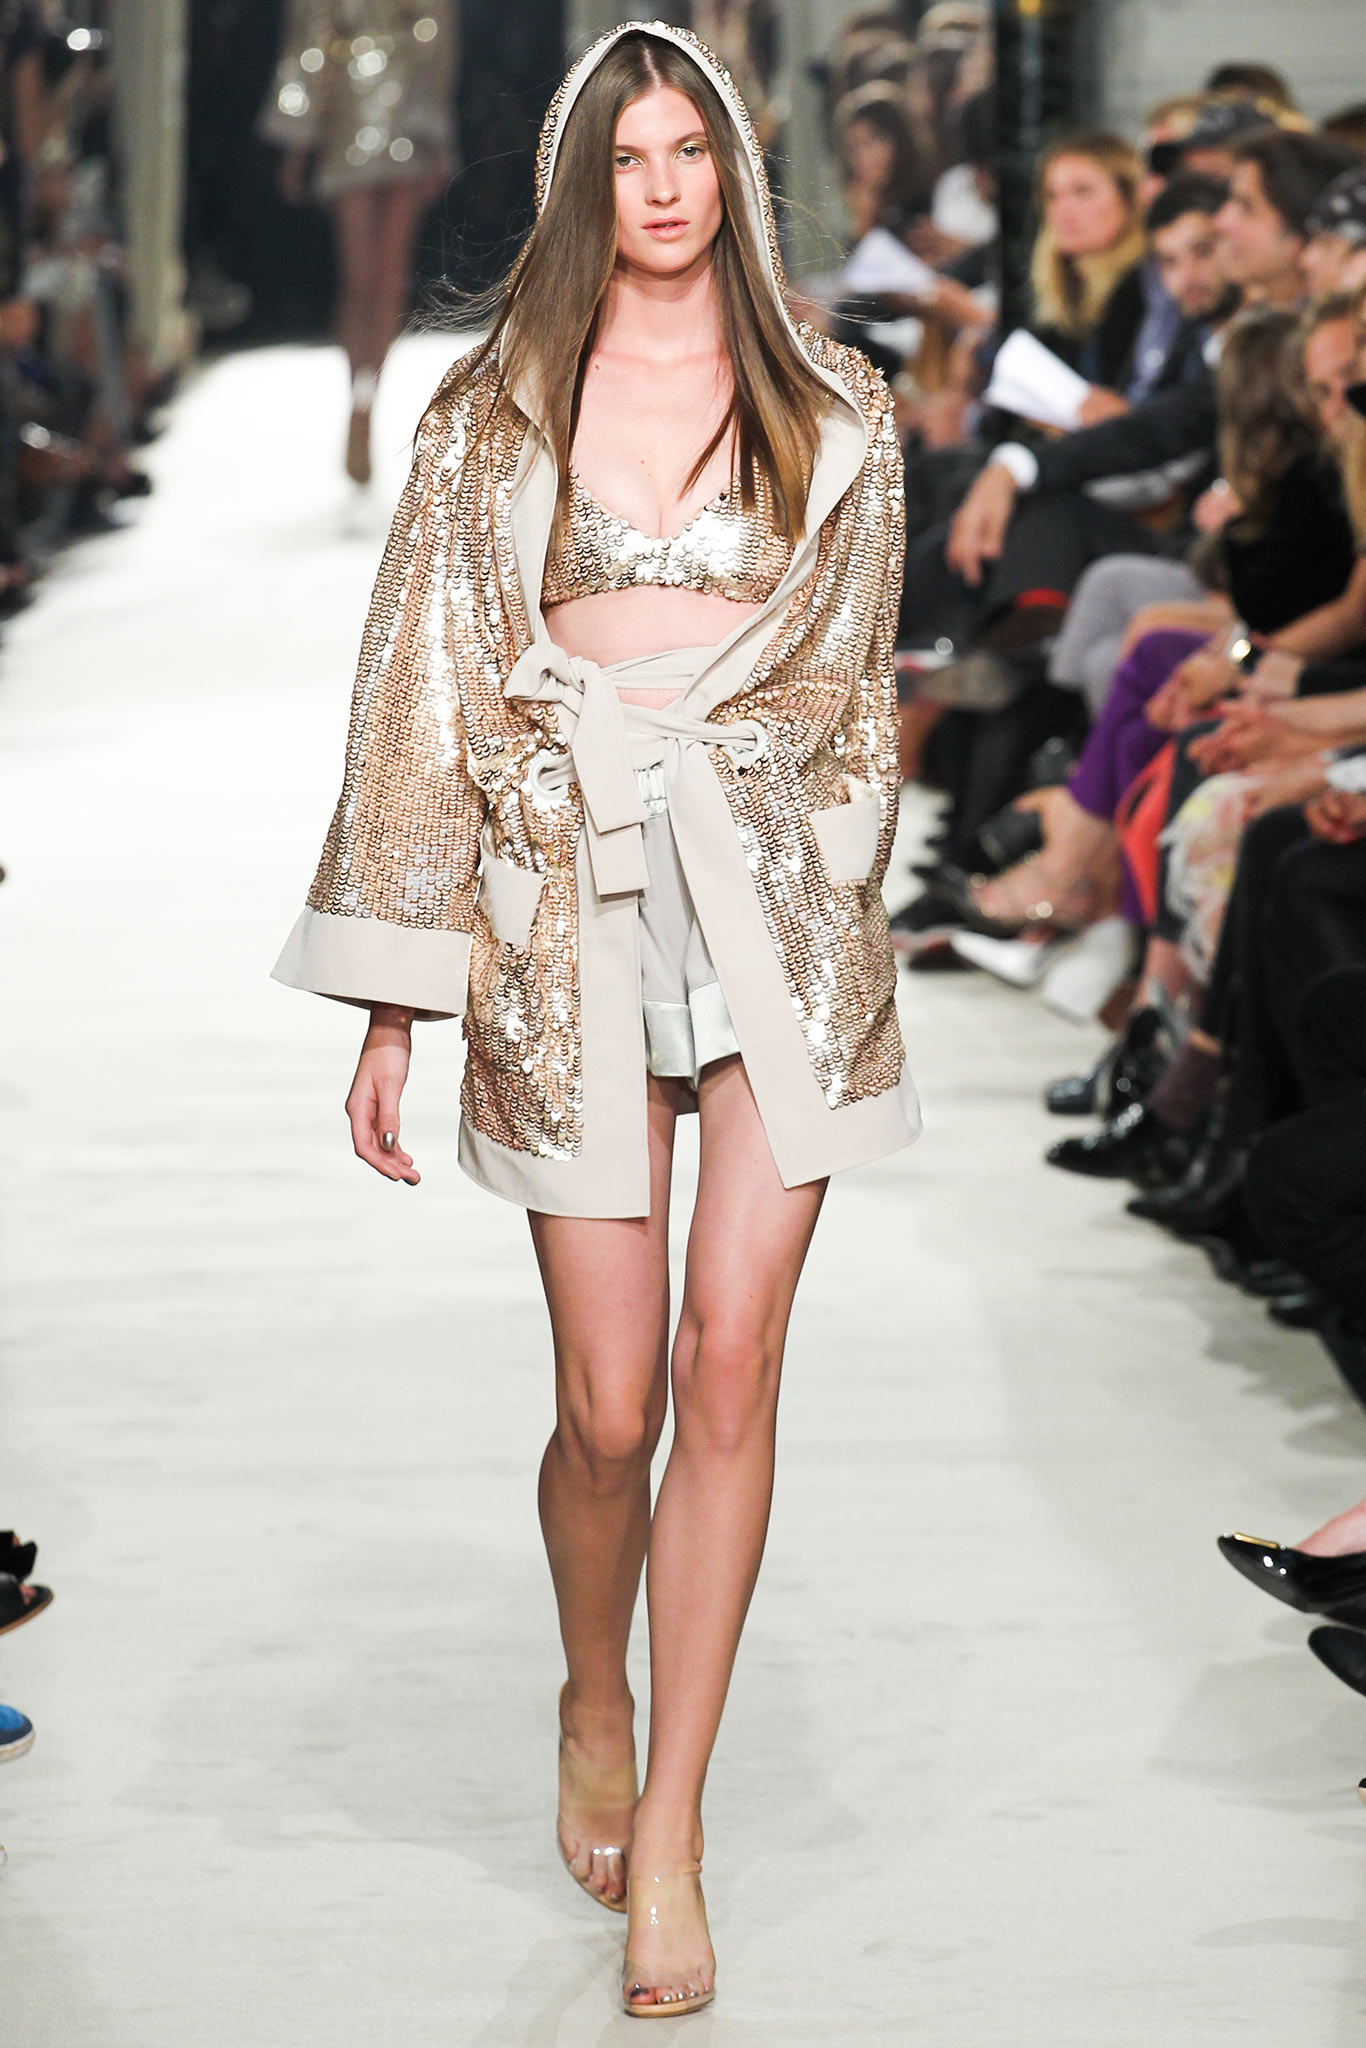 Paris Fashion Week Spring 2015 RTW: Alexis Mabille – Ani ...